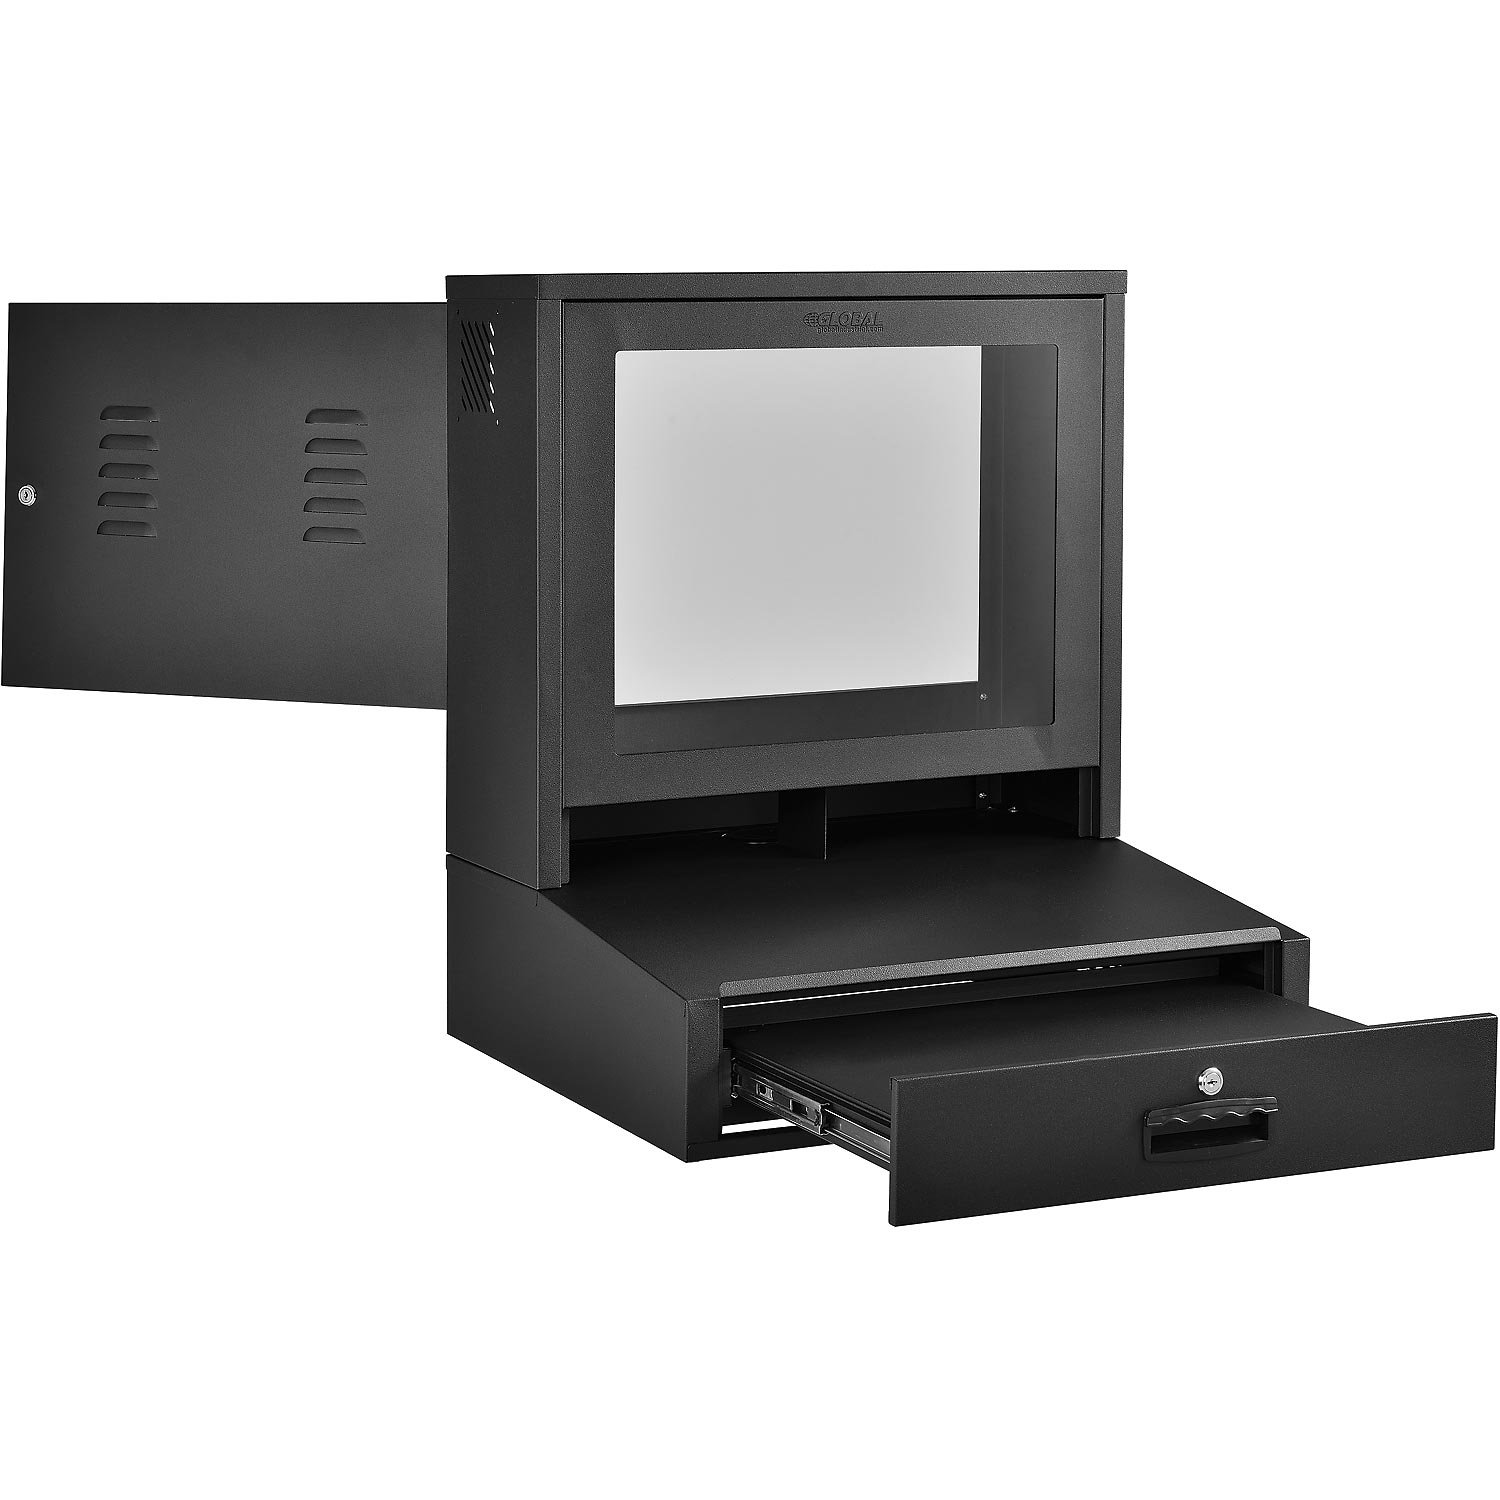 LCD Counter Top Security Computer Cabinet, Black, 24-1/2''W x 22-1/2''D x 29-1/2''H